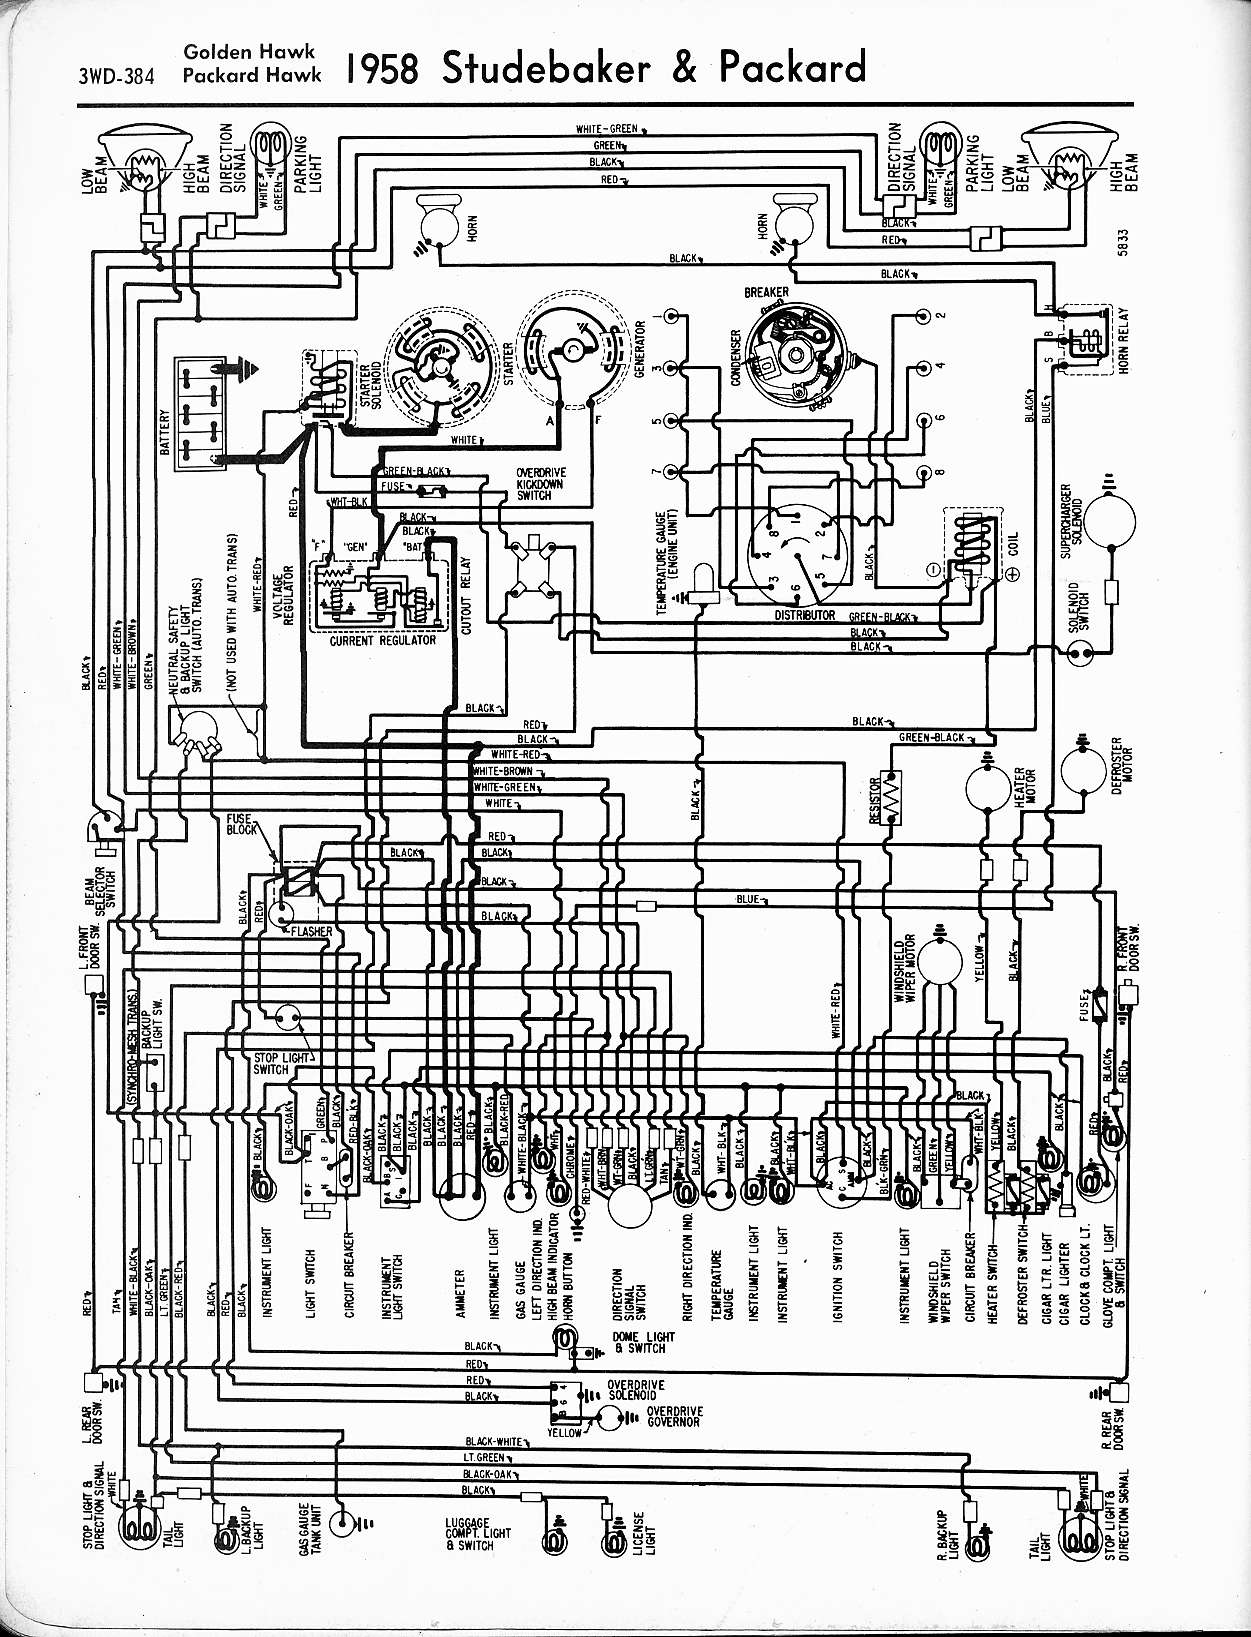 MWire5765 384 studebaker wiring diagrams the old car manual project 1955 studebaker wiring diagram at webbmarketing.co